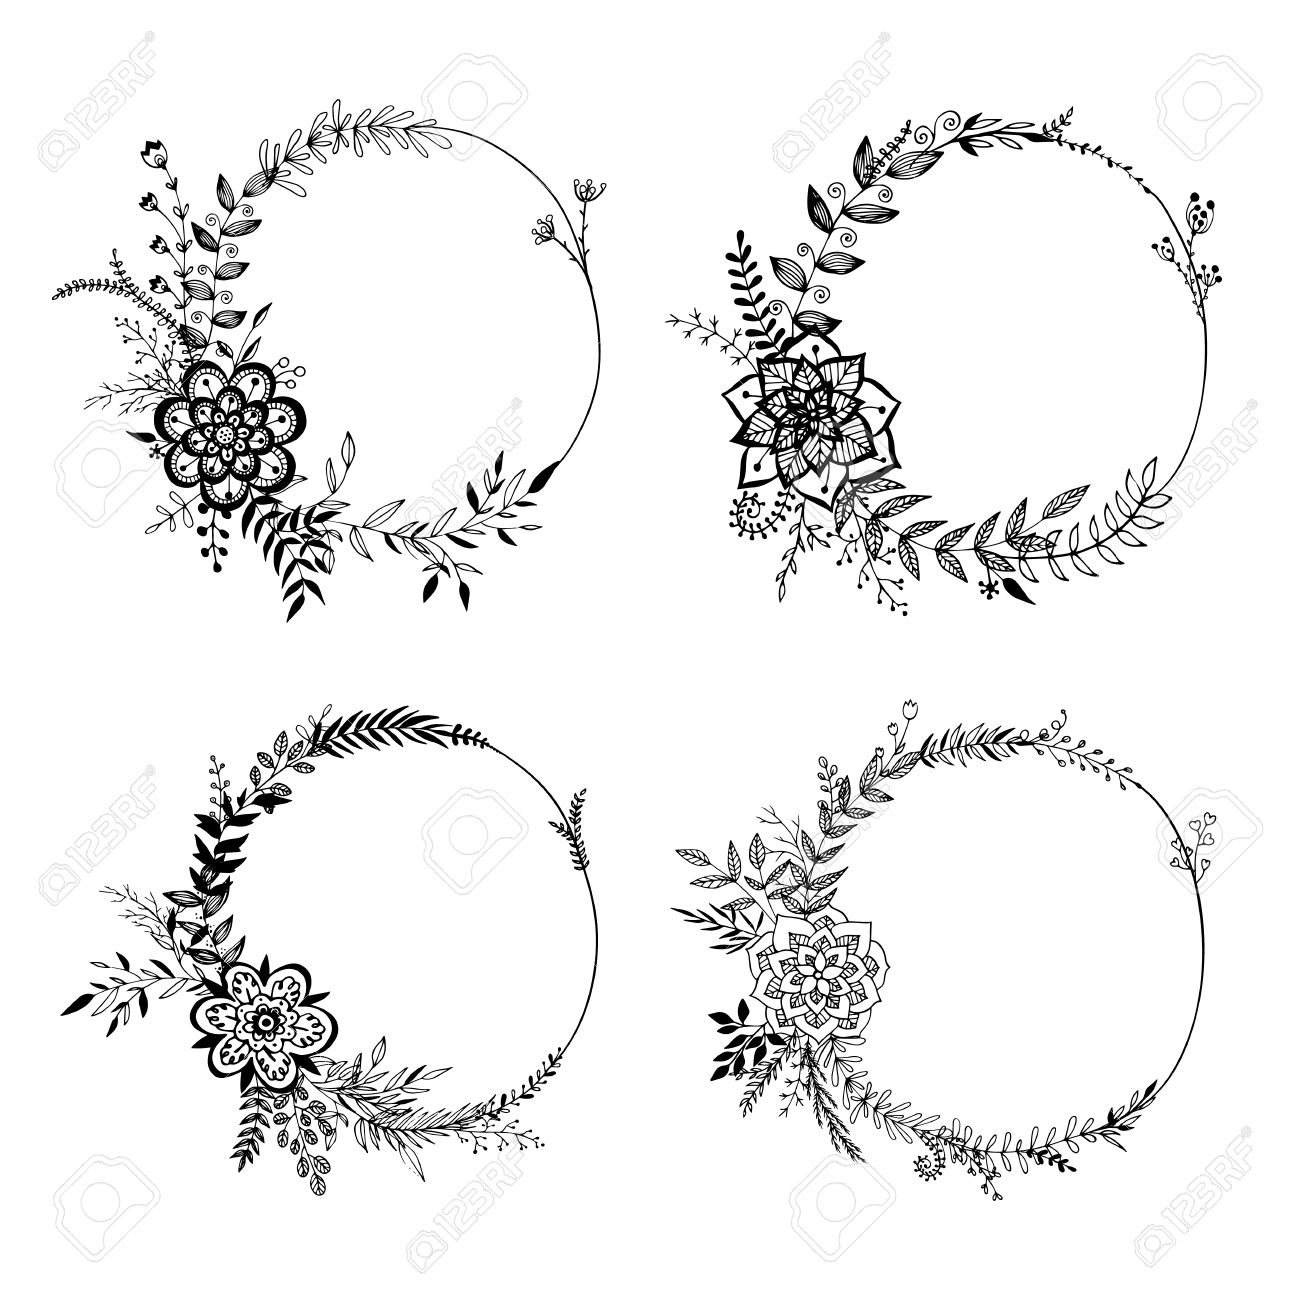 Set of floral wreaths isolated on white background hand drawn vector illustration set of floral wreaths isolated on white background hand drawn elements for wedding decor junglespirit Gallery